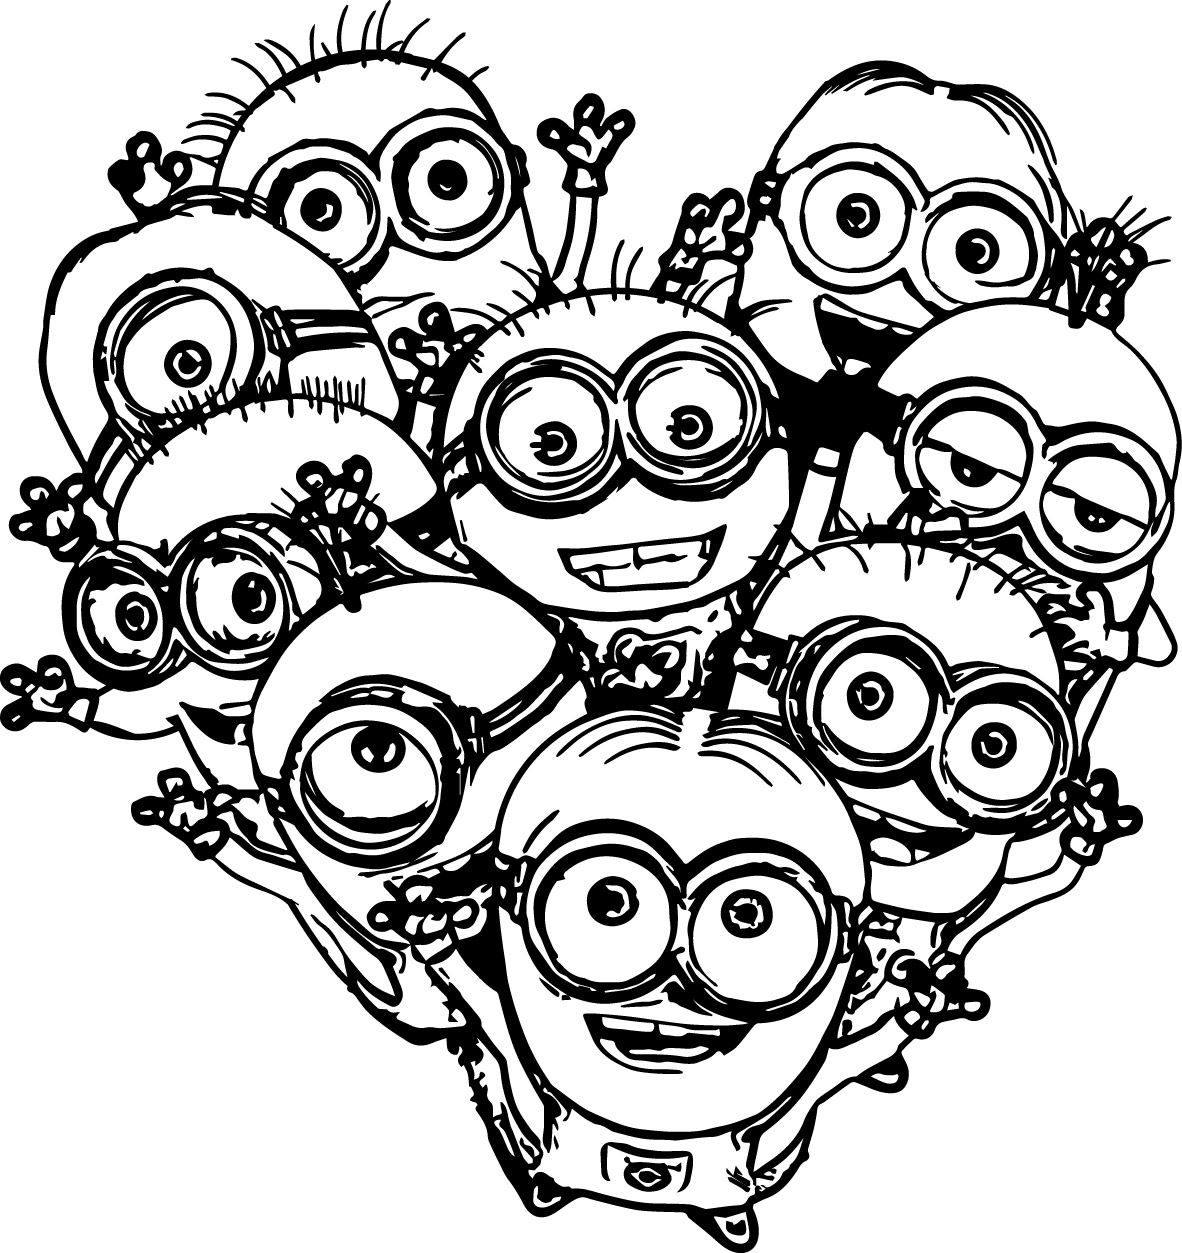 multiple minions coloring pages wecoloringpage - Minion Coloring Pages